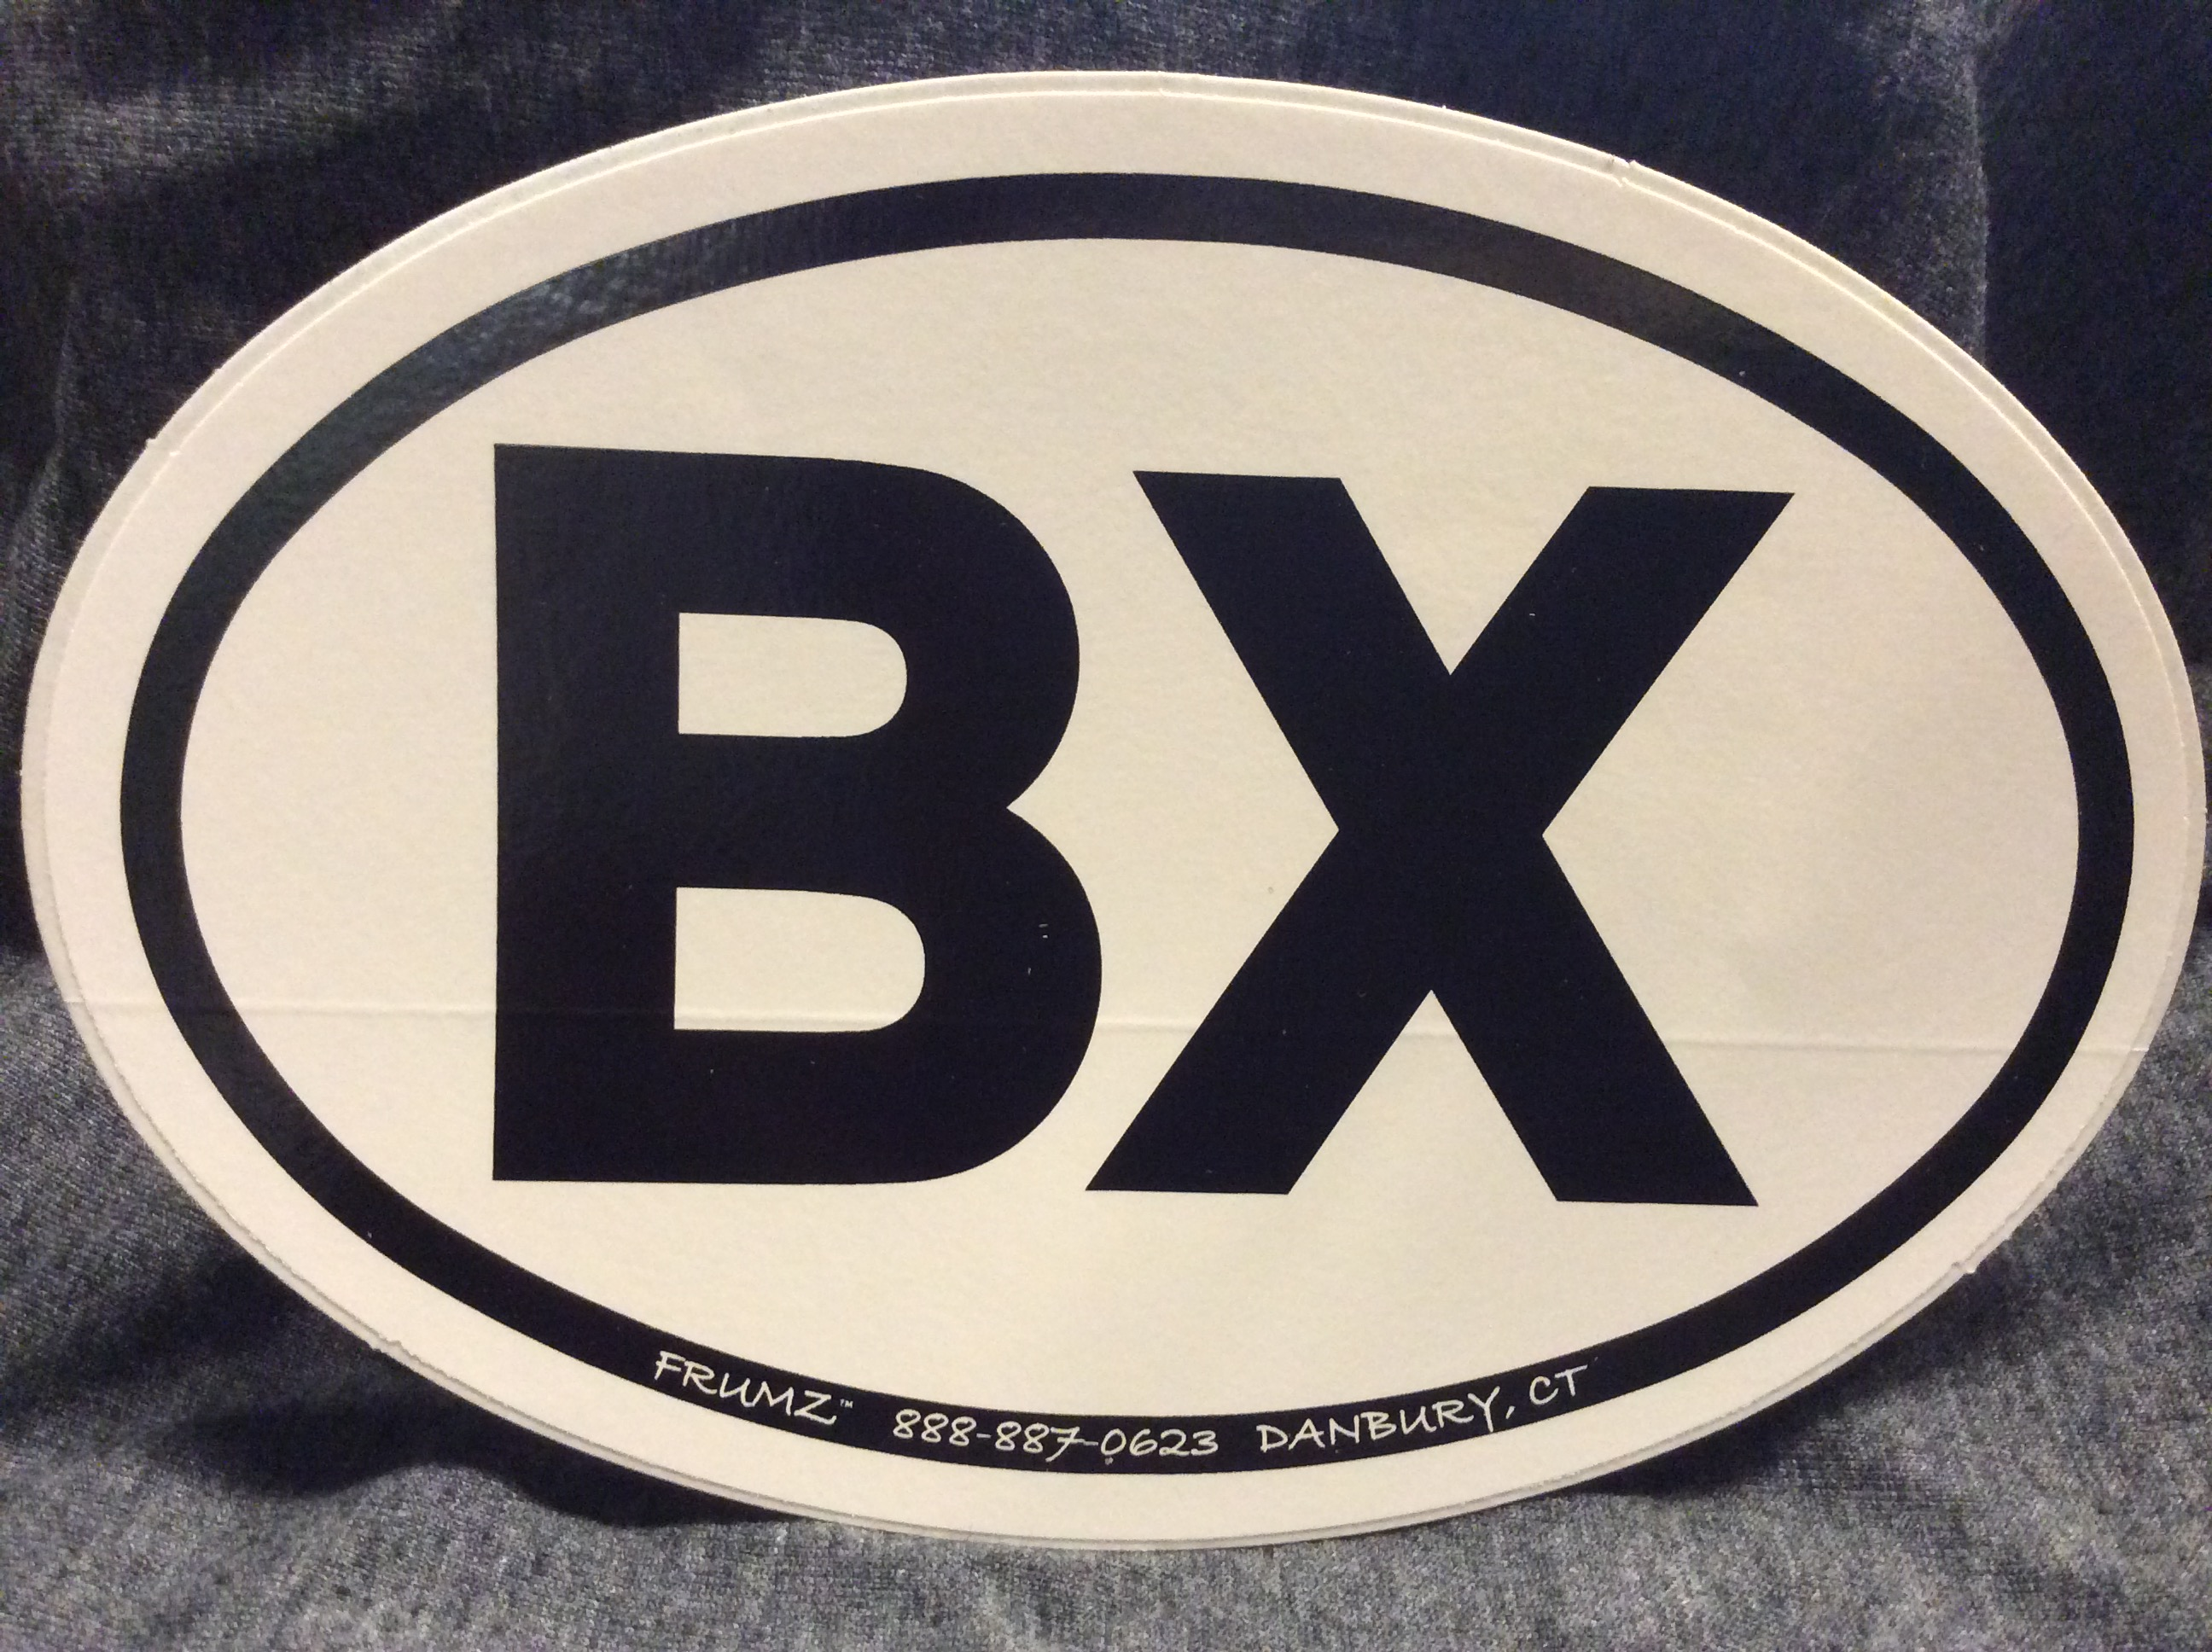 BX oval sticker decal